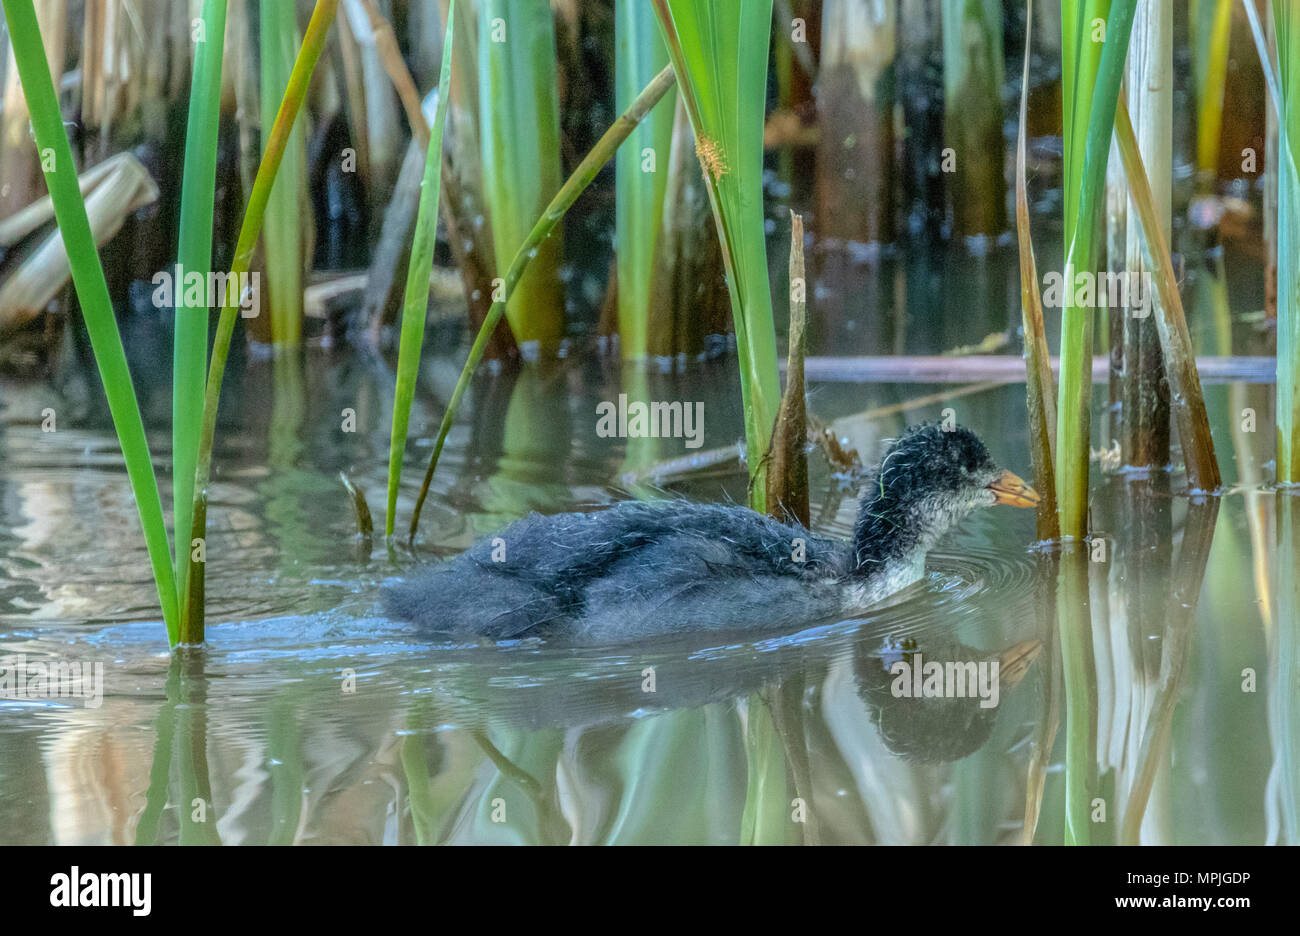 Single Eurasian coot (Fulica atra) chick swimming in a lake - Stock Image